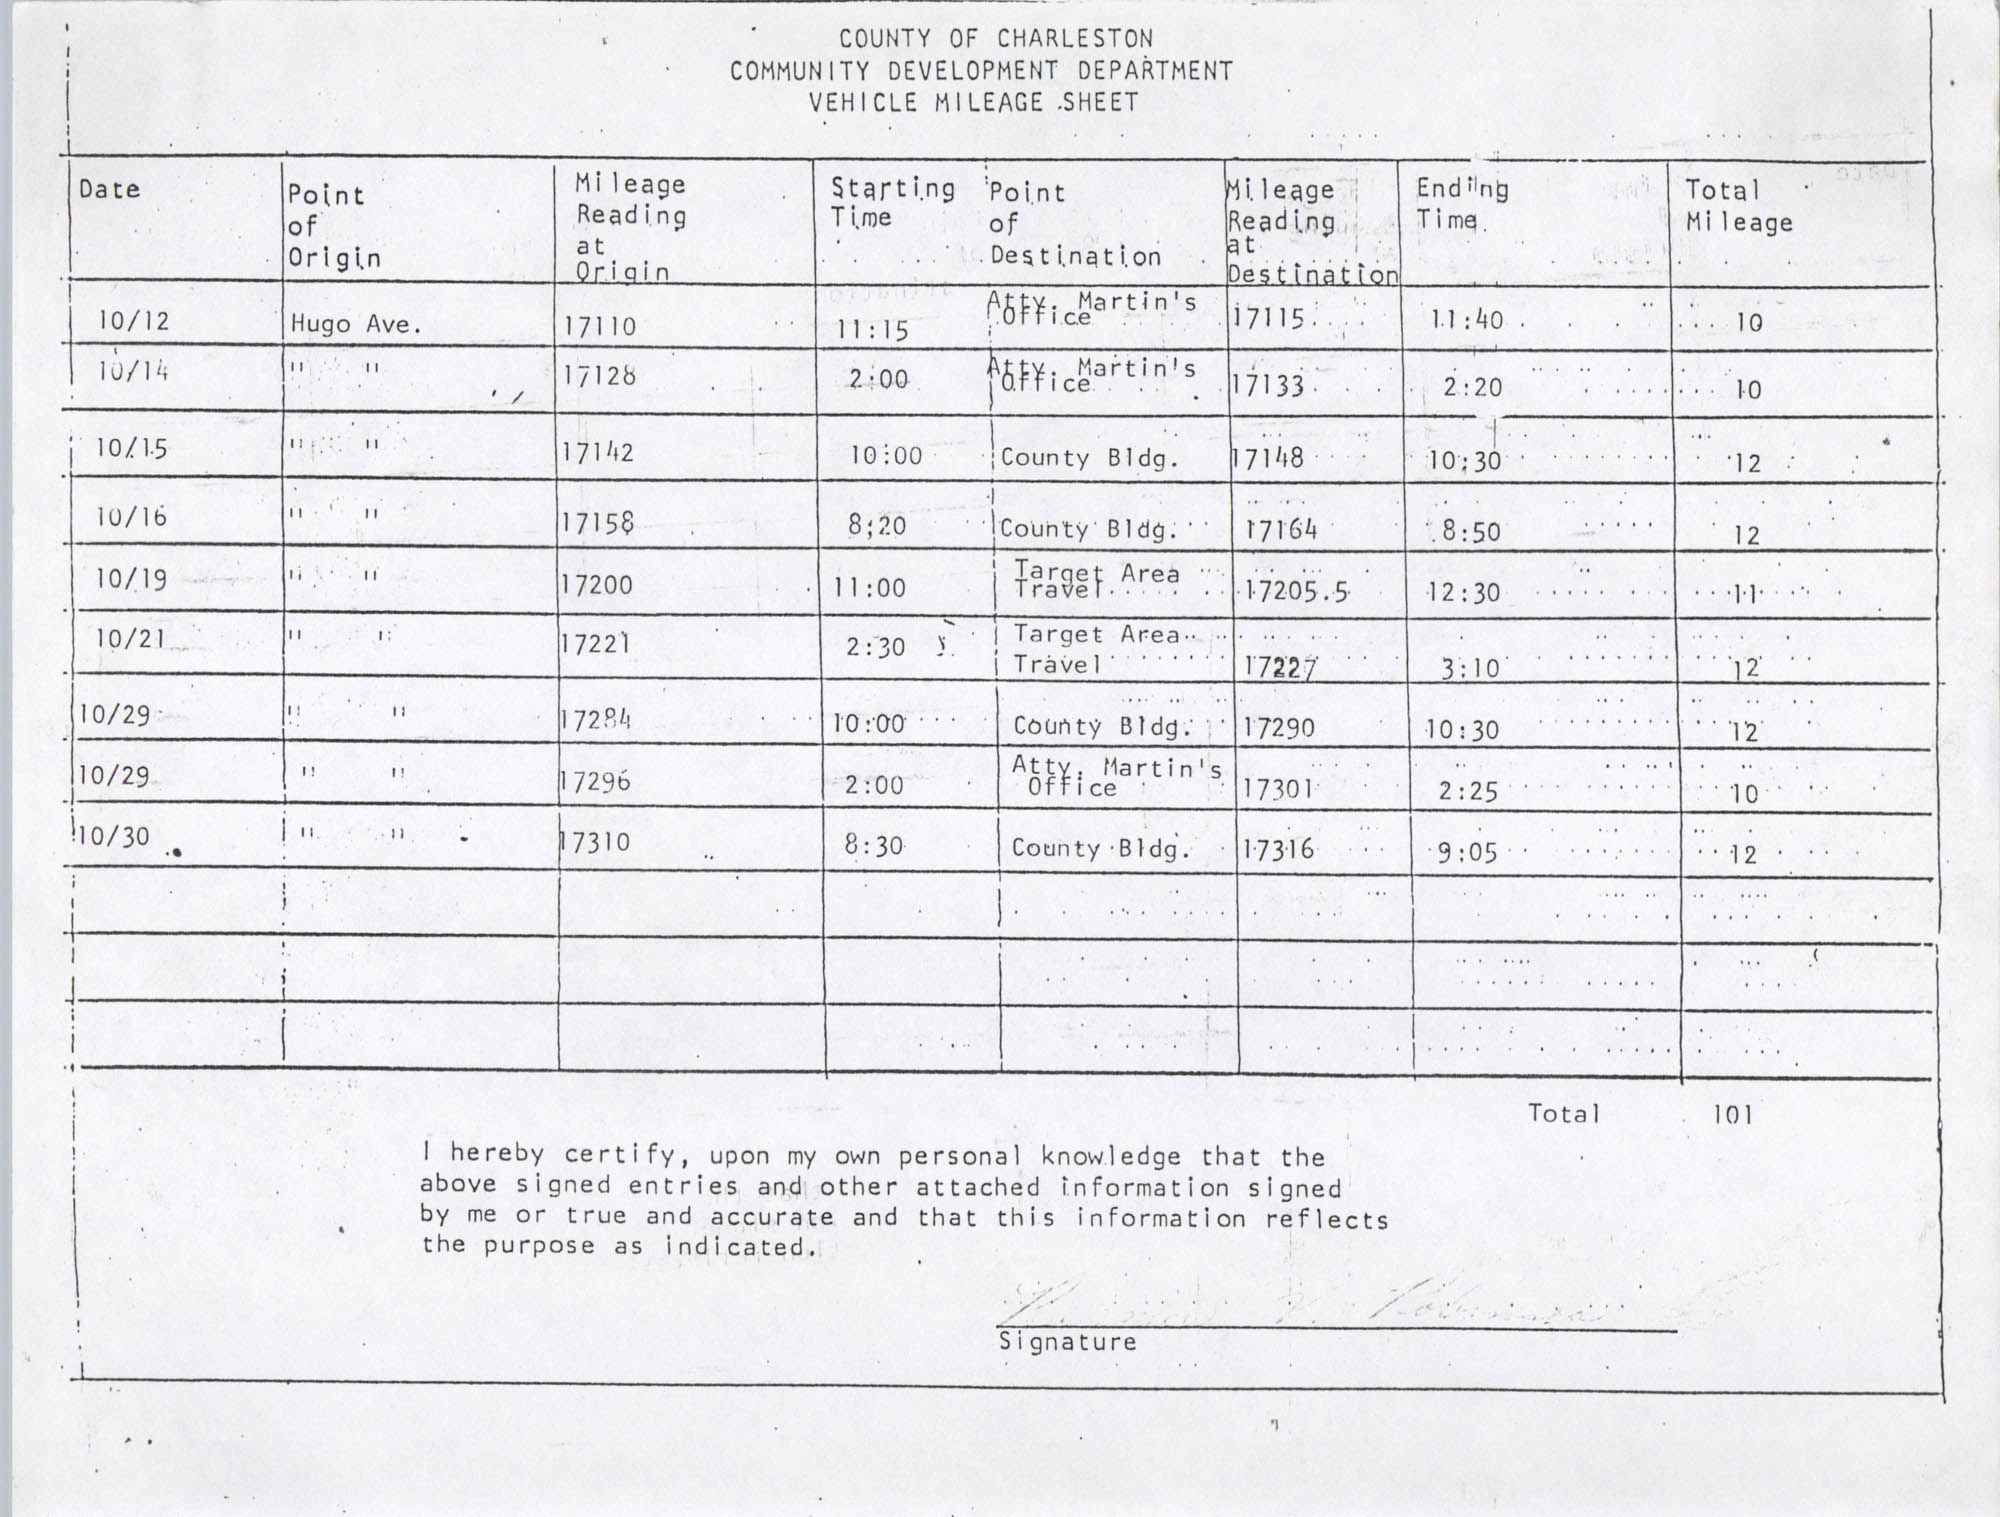 Community Development Department Vehicle Mileage Sheet, Page 11